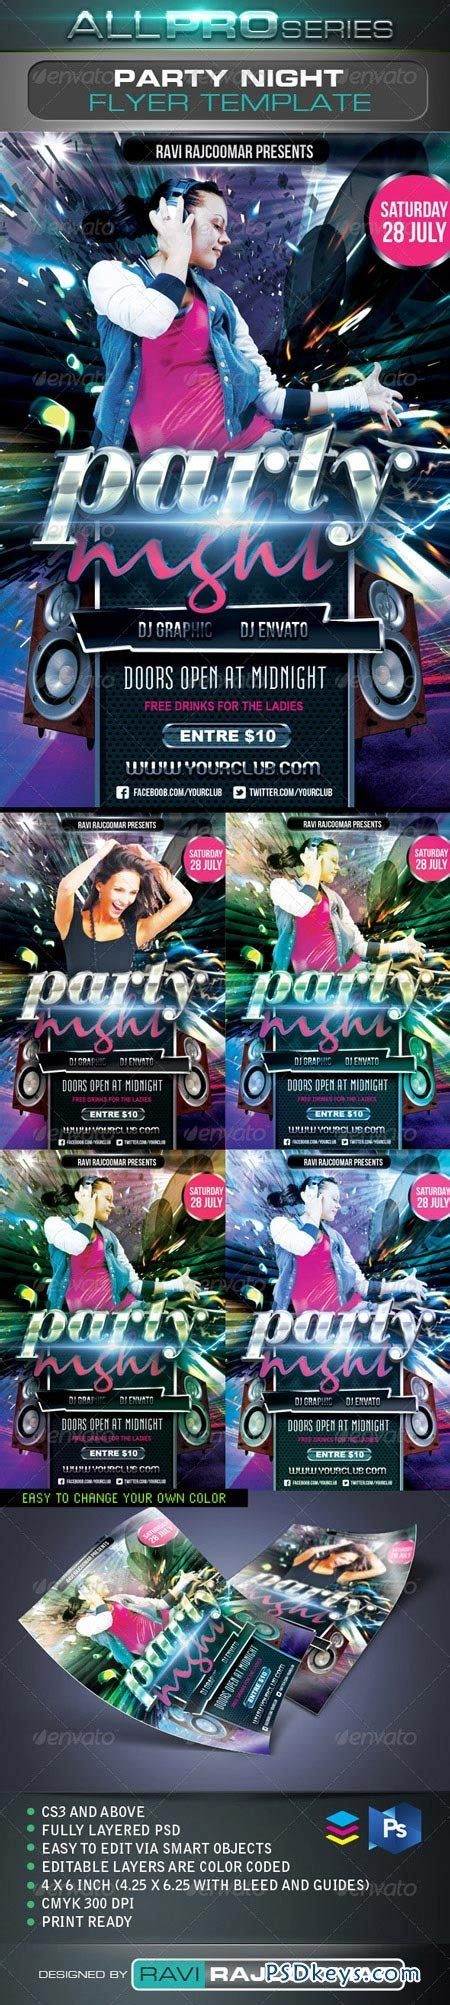 Party Night Flyer Template 2650826 187 Free Download Photoshop Vector Stock Image Via Torrent Flyer Template Rar